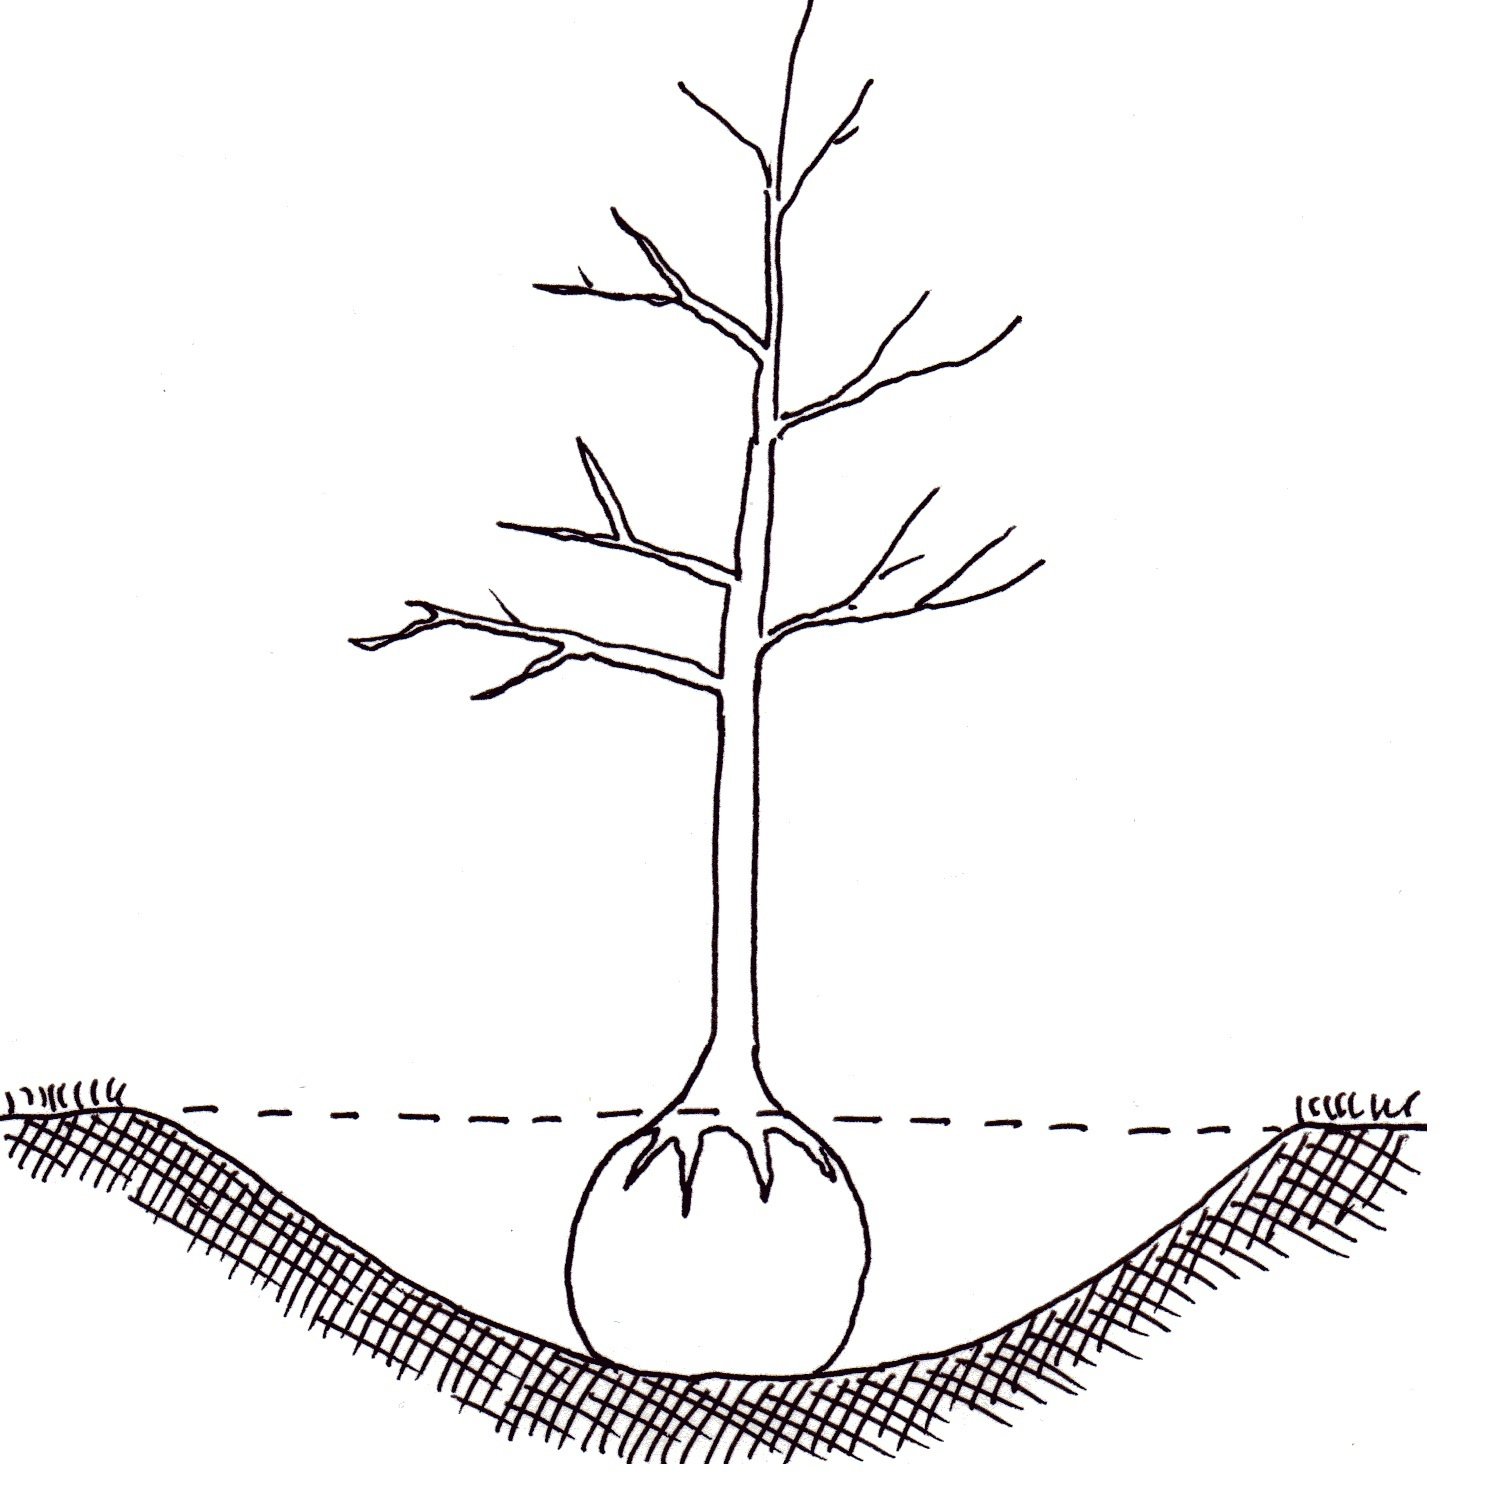 Tree Root System Diagram Pictures To Pin